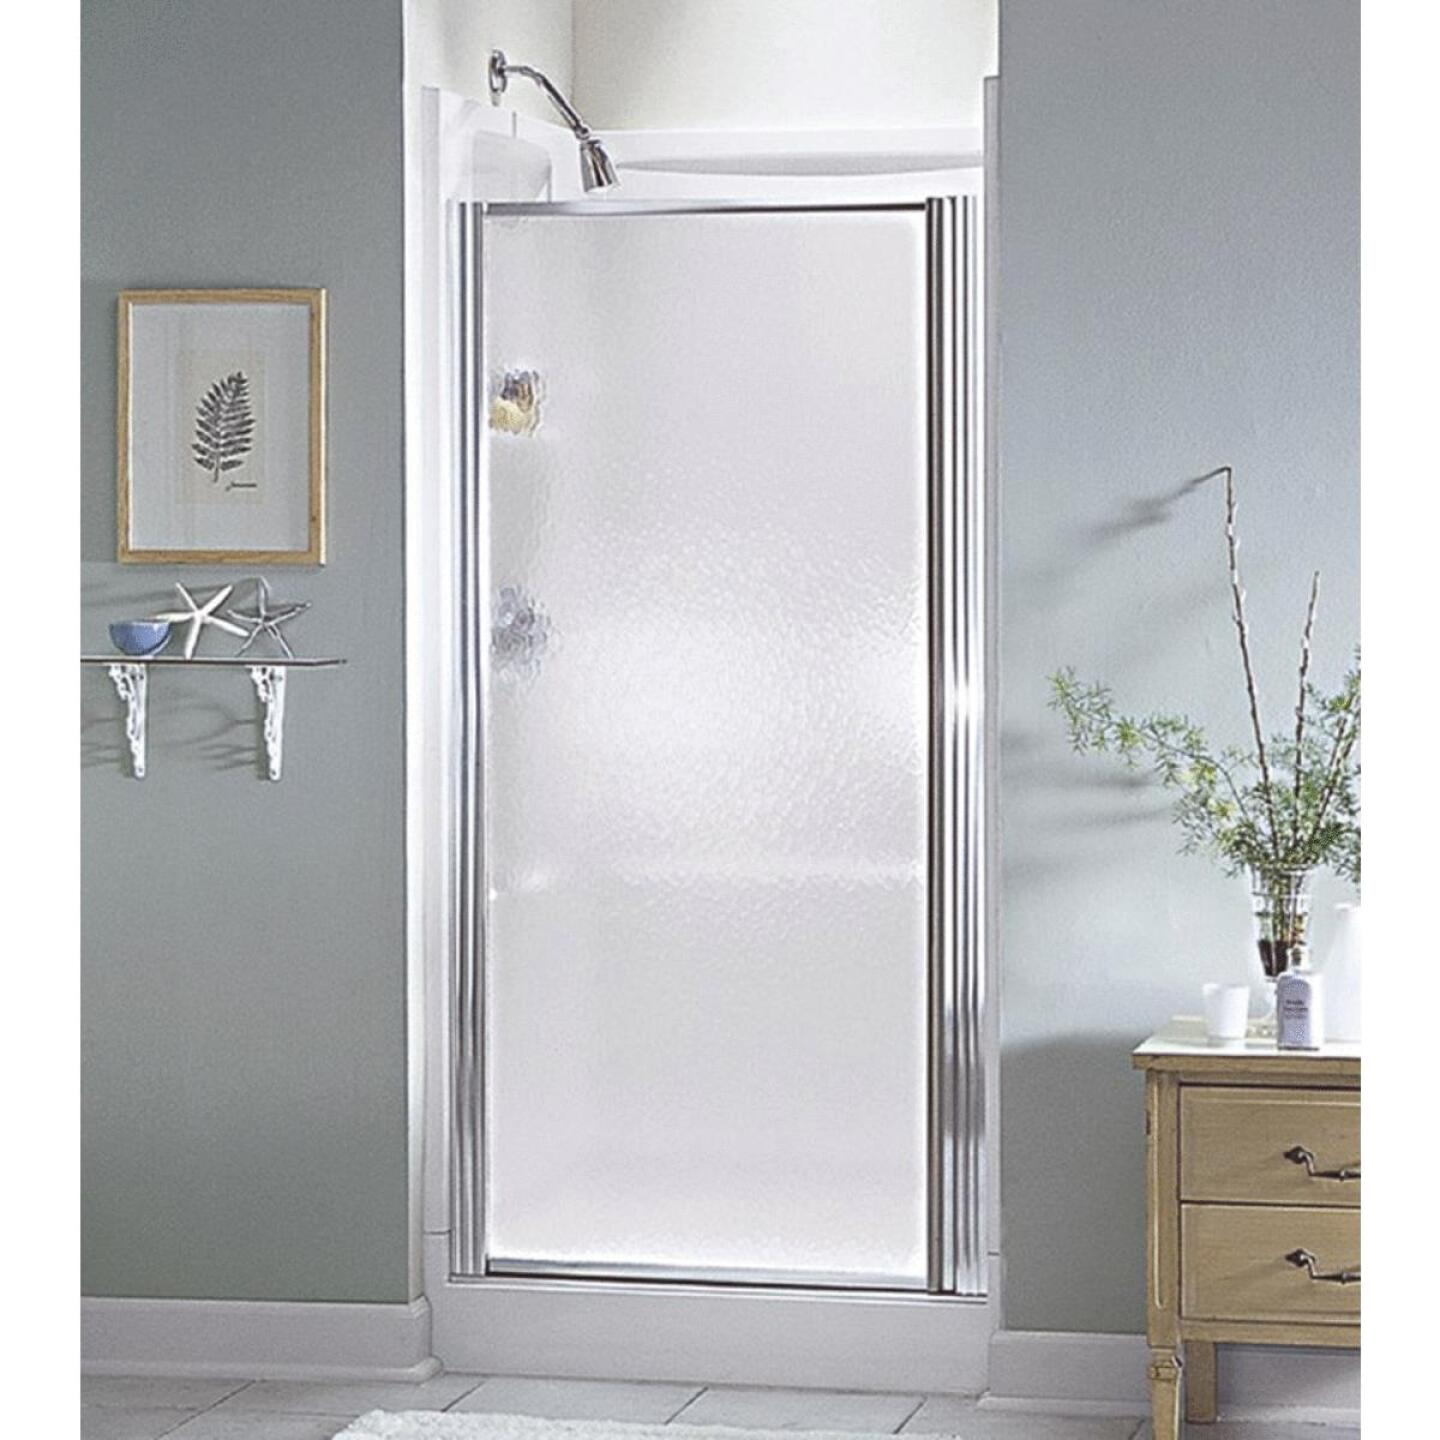 Sterling 28-1/2 In. W. X 64 In. H. Chrome Hammered Glass Standard Pivot Shower Door Image 1